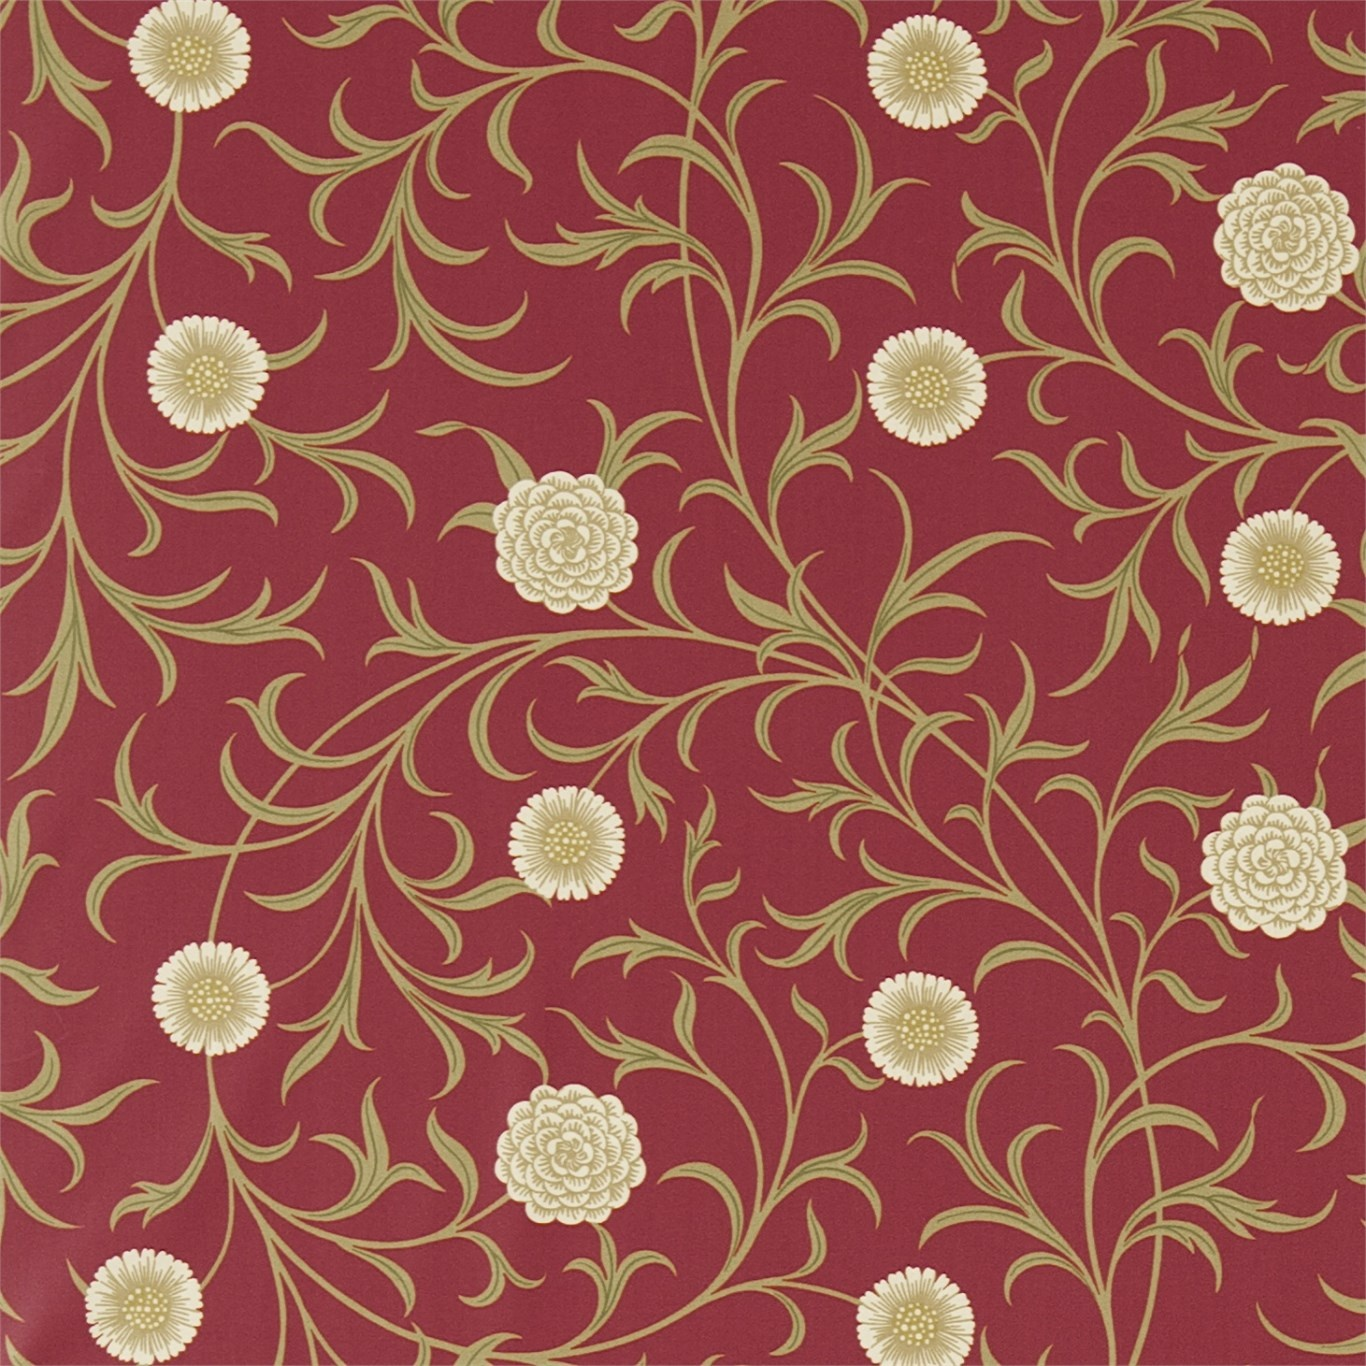 Image of Morris & Co Scroll Raspberry/Olive Curtain Fabric 220310